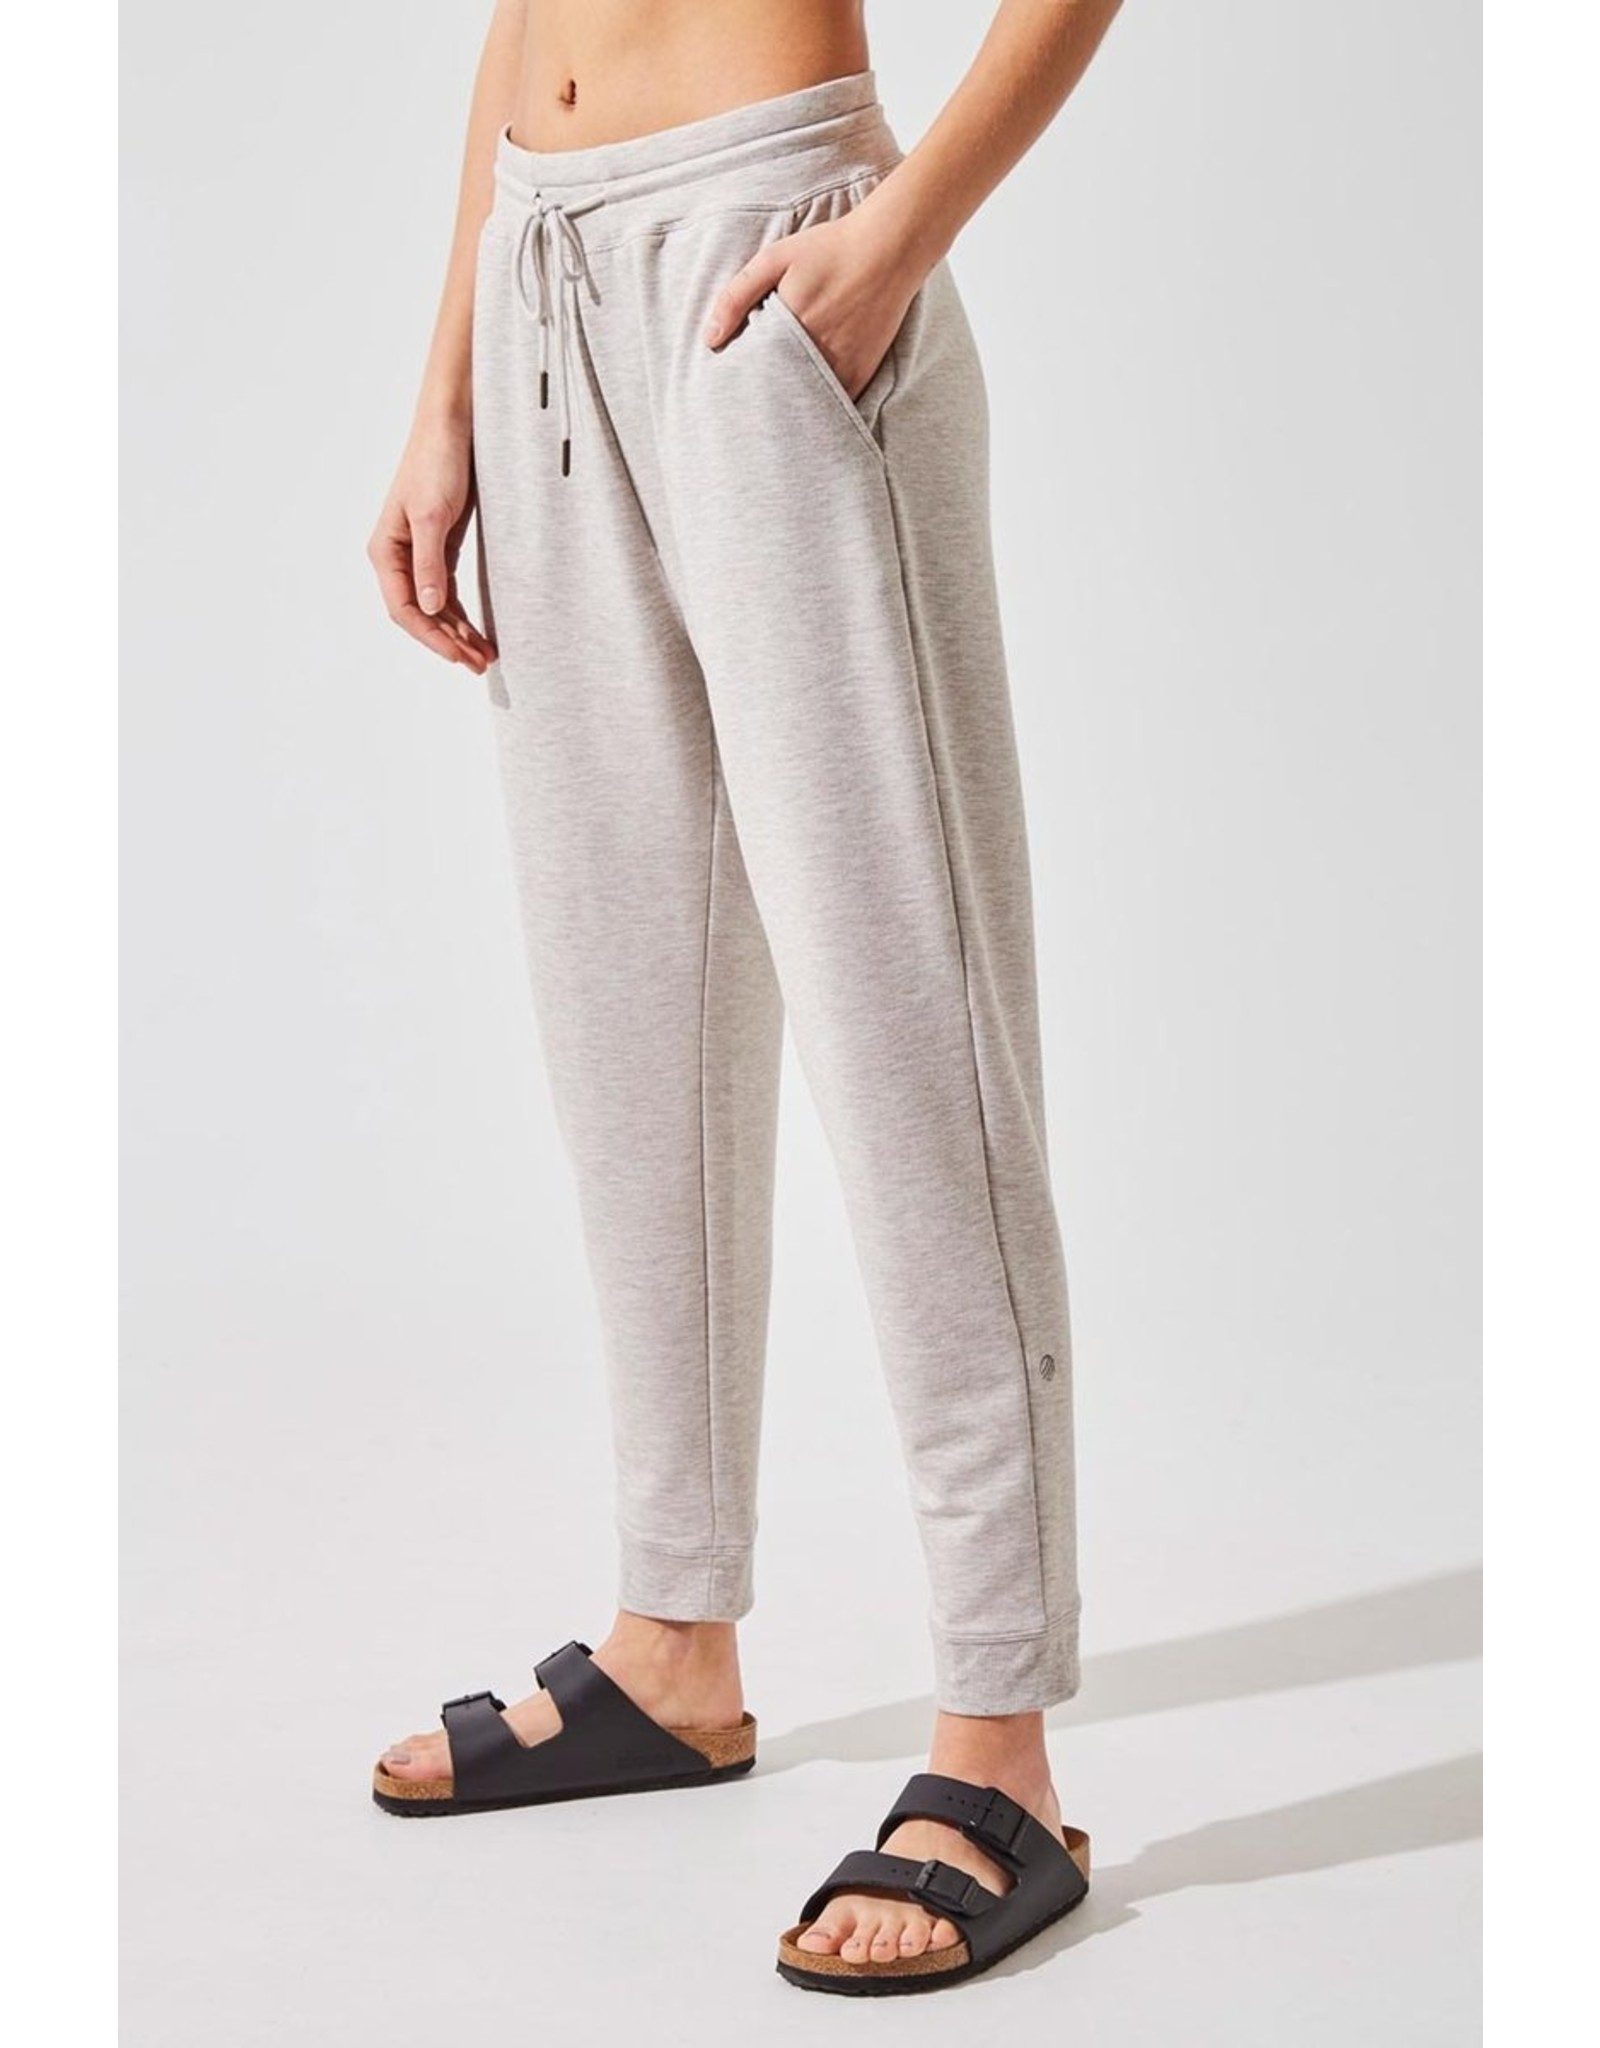 MPG RECRUIT RECYCLED POLYESTER LUXE SWEATPANTS